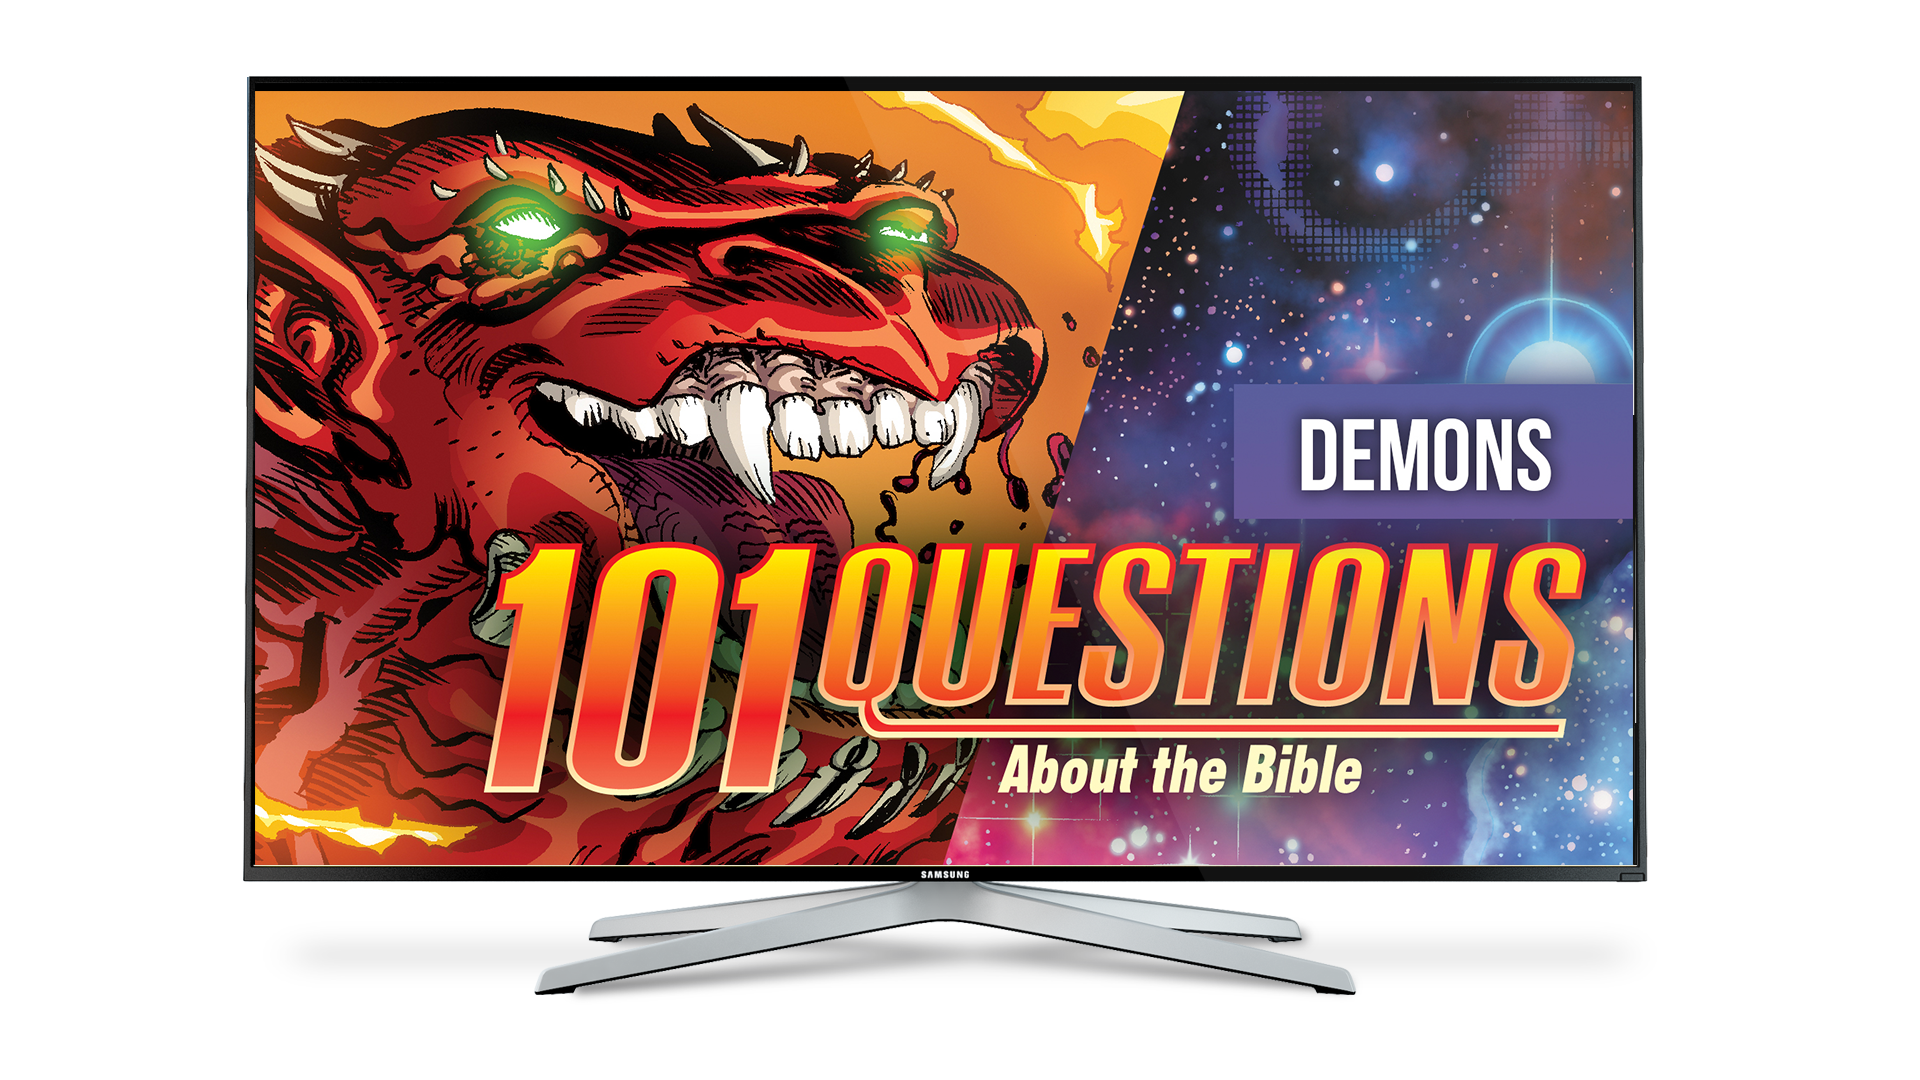 101 Questions: #17 What does the Bible say about demons?